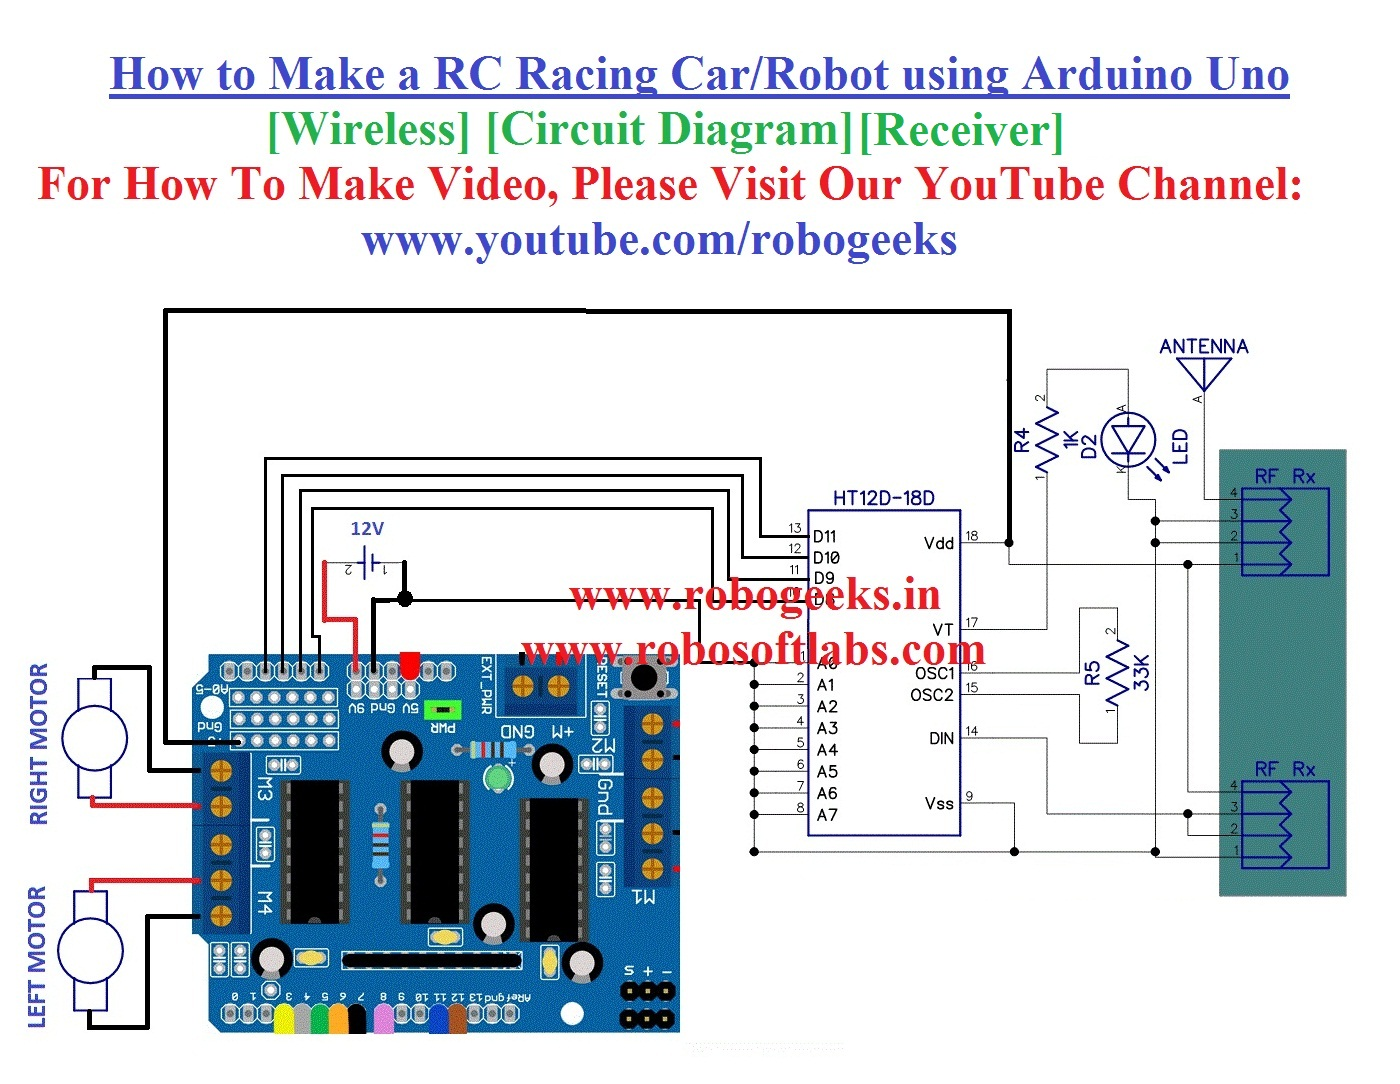 How to make a RC Racing Car | robot using Arduino Uno